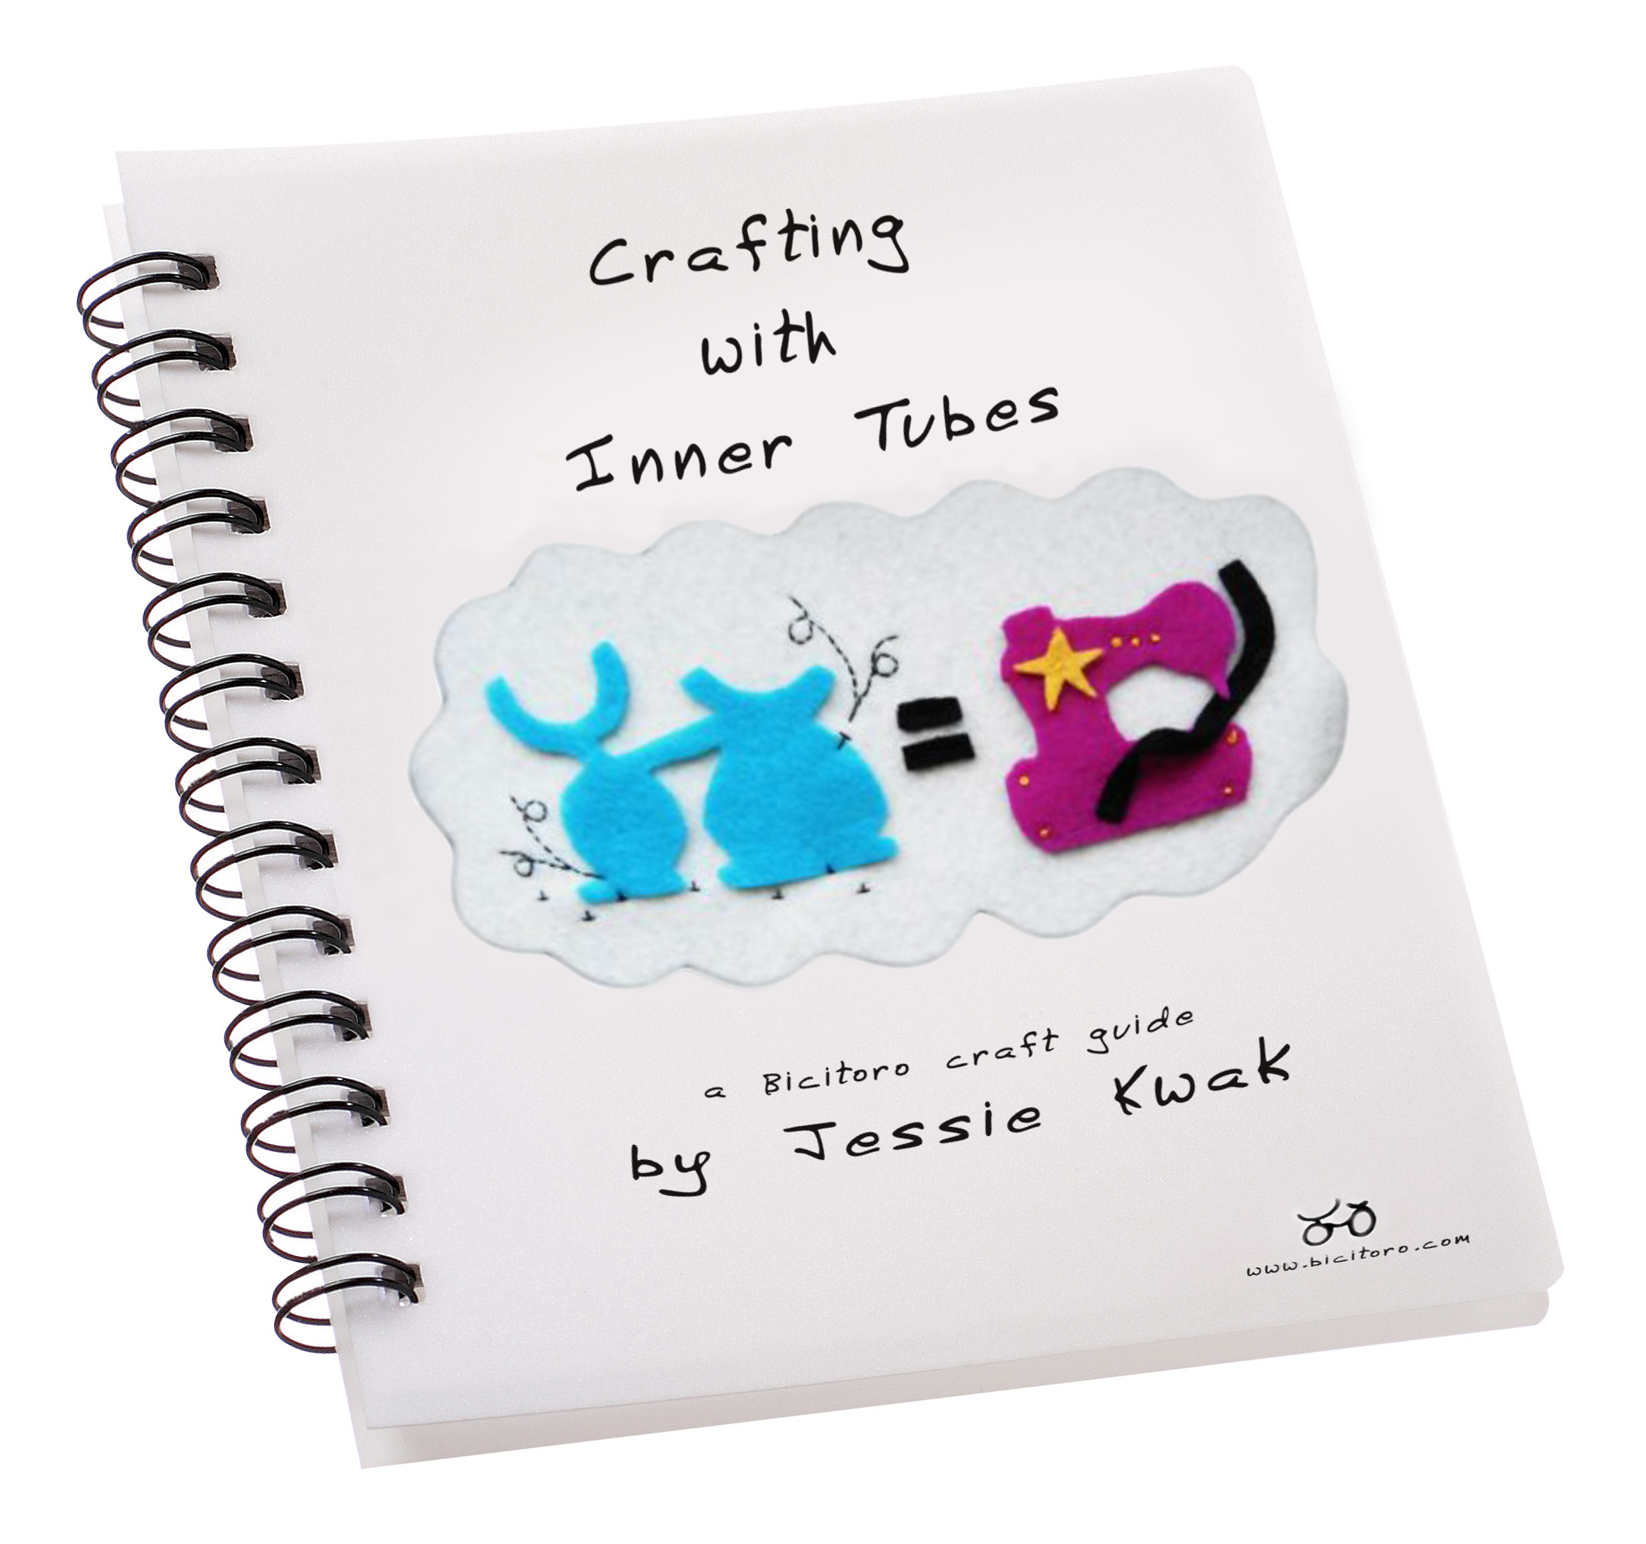 Crafting with inner tubes a bicitoro craft guide 450 crafting with inner tubes bicitoro bikes and crafts fandeluxe Ebook collections